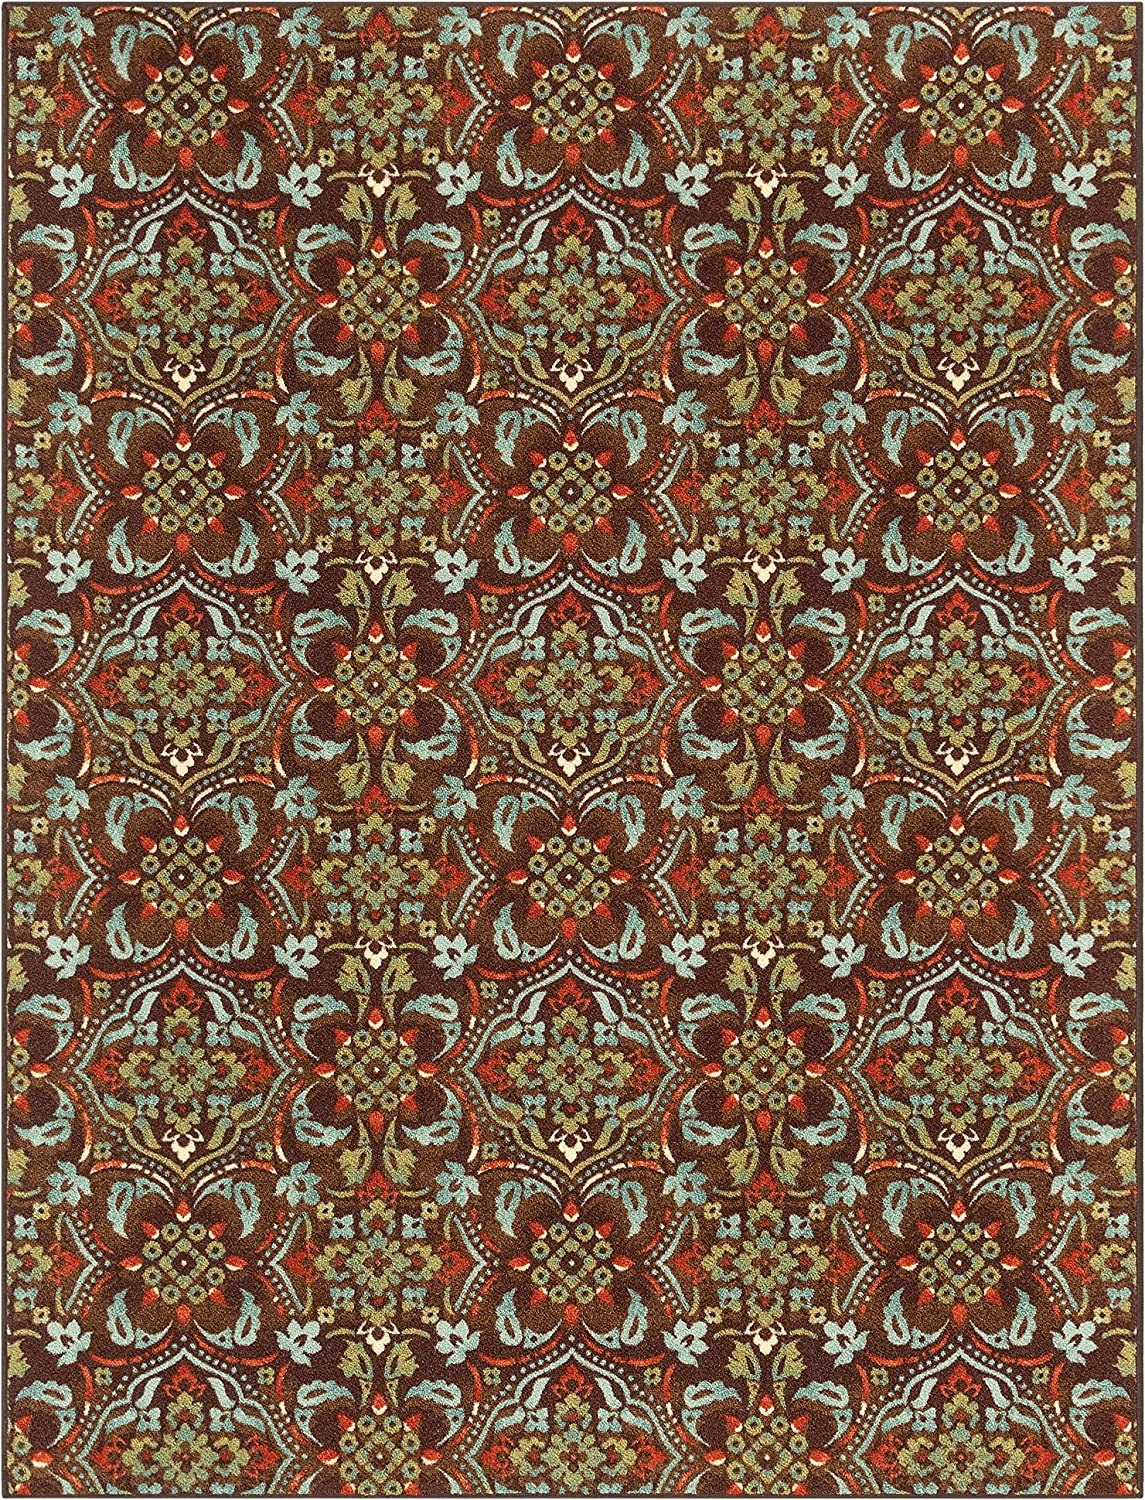 Well Woven Kings Court Florence Traditional Damask Ranking Industry No. 1 TOP8 5' Brown 7' x